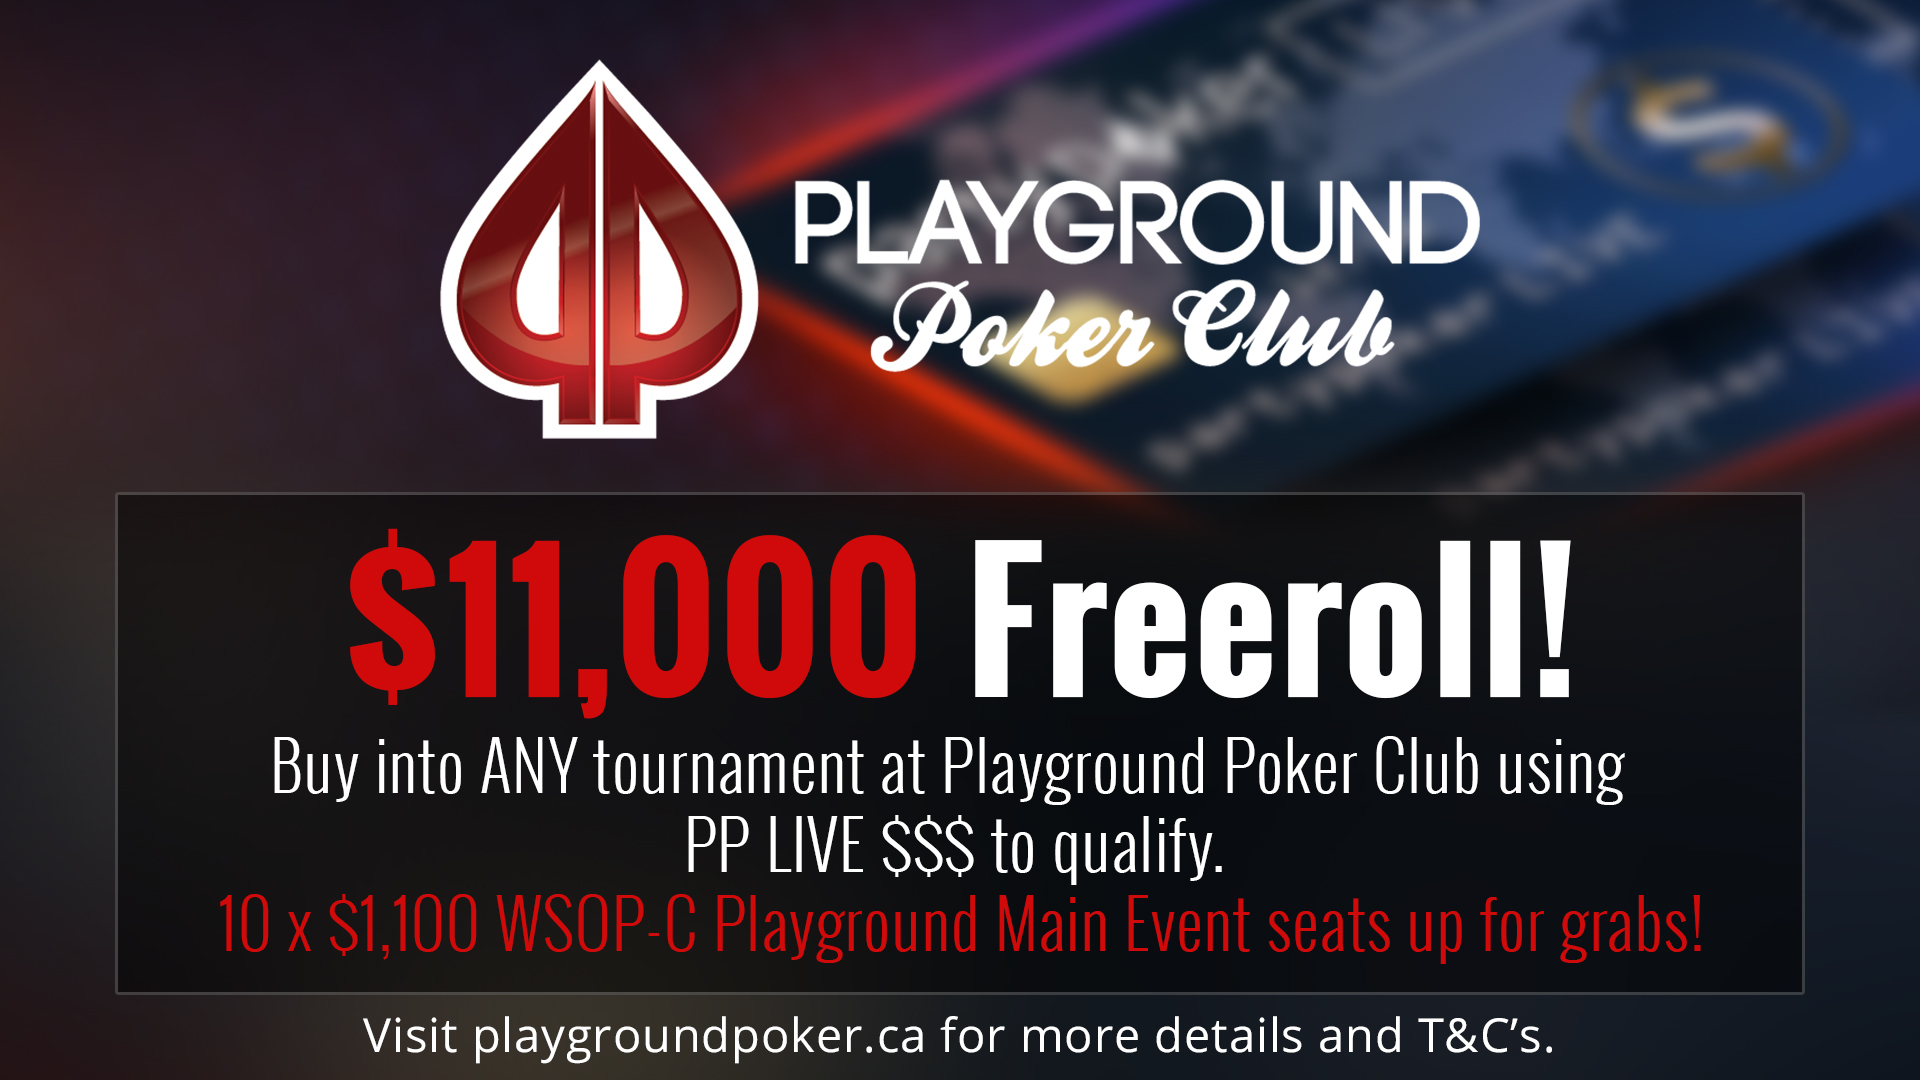 Play the WSOP-C Main Event for FREE!